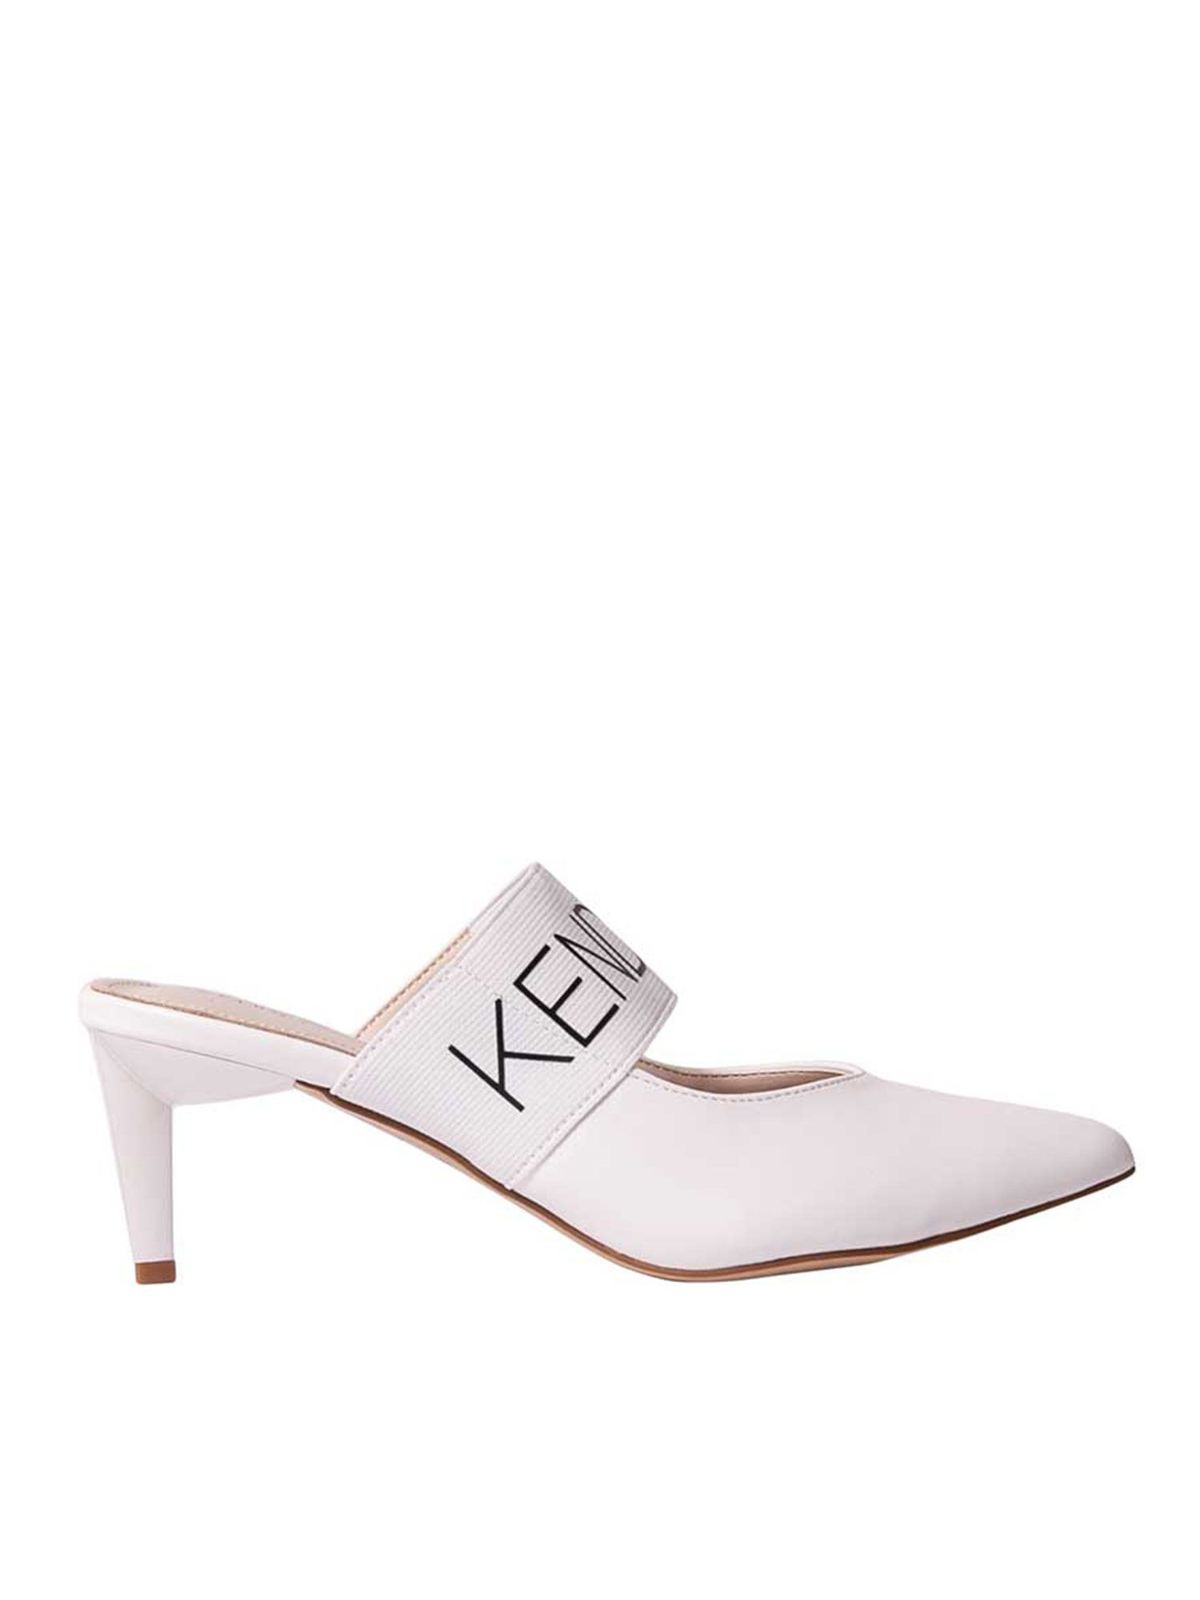 Kendall + Kylie LACEY MULES IN WHITE